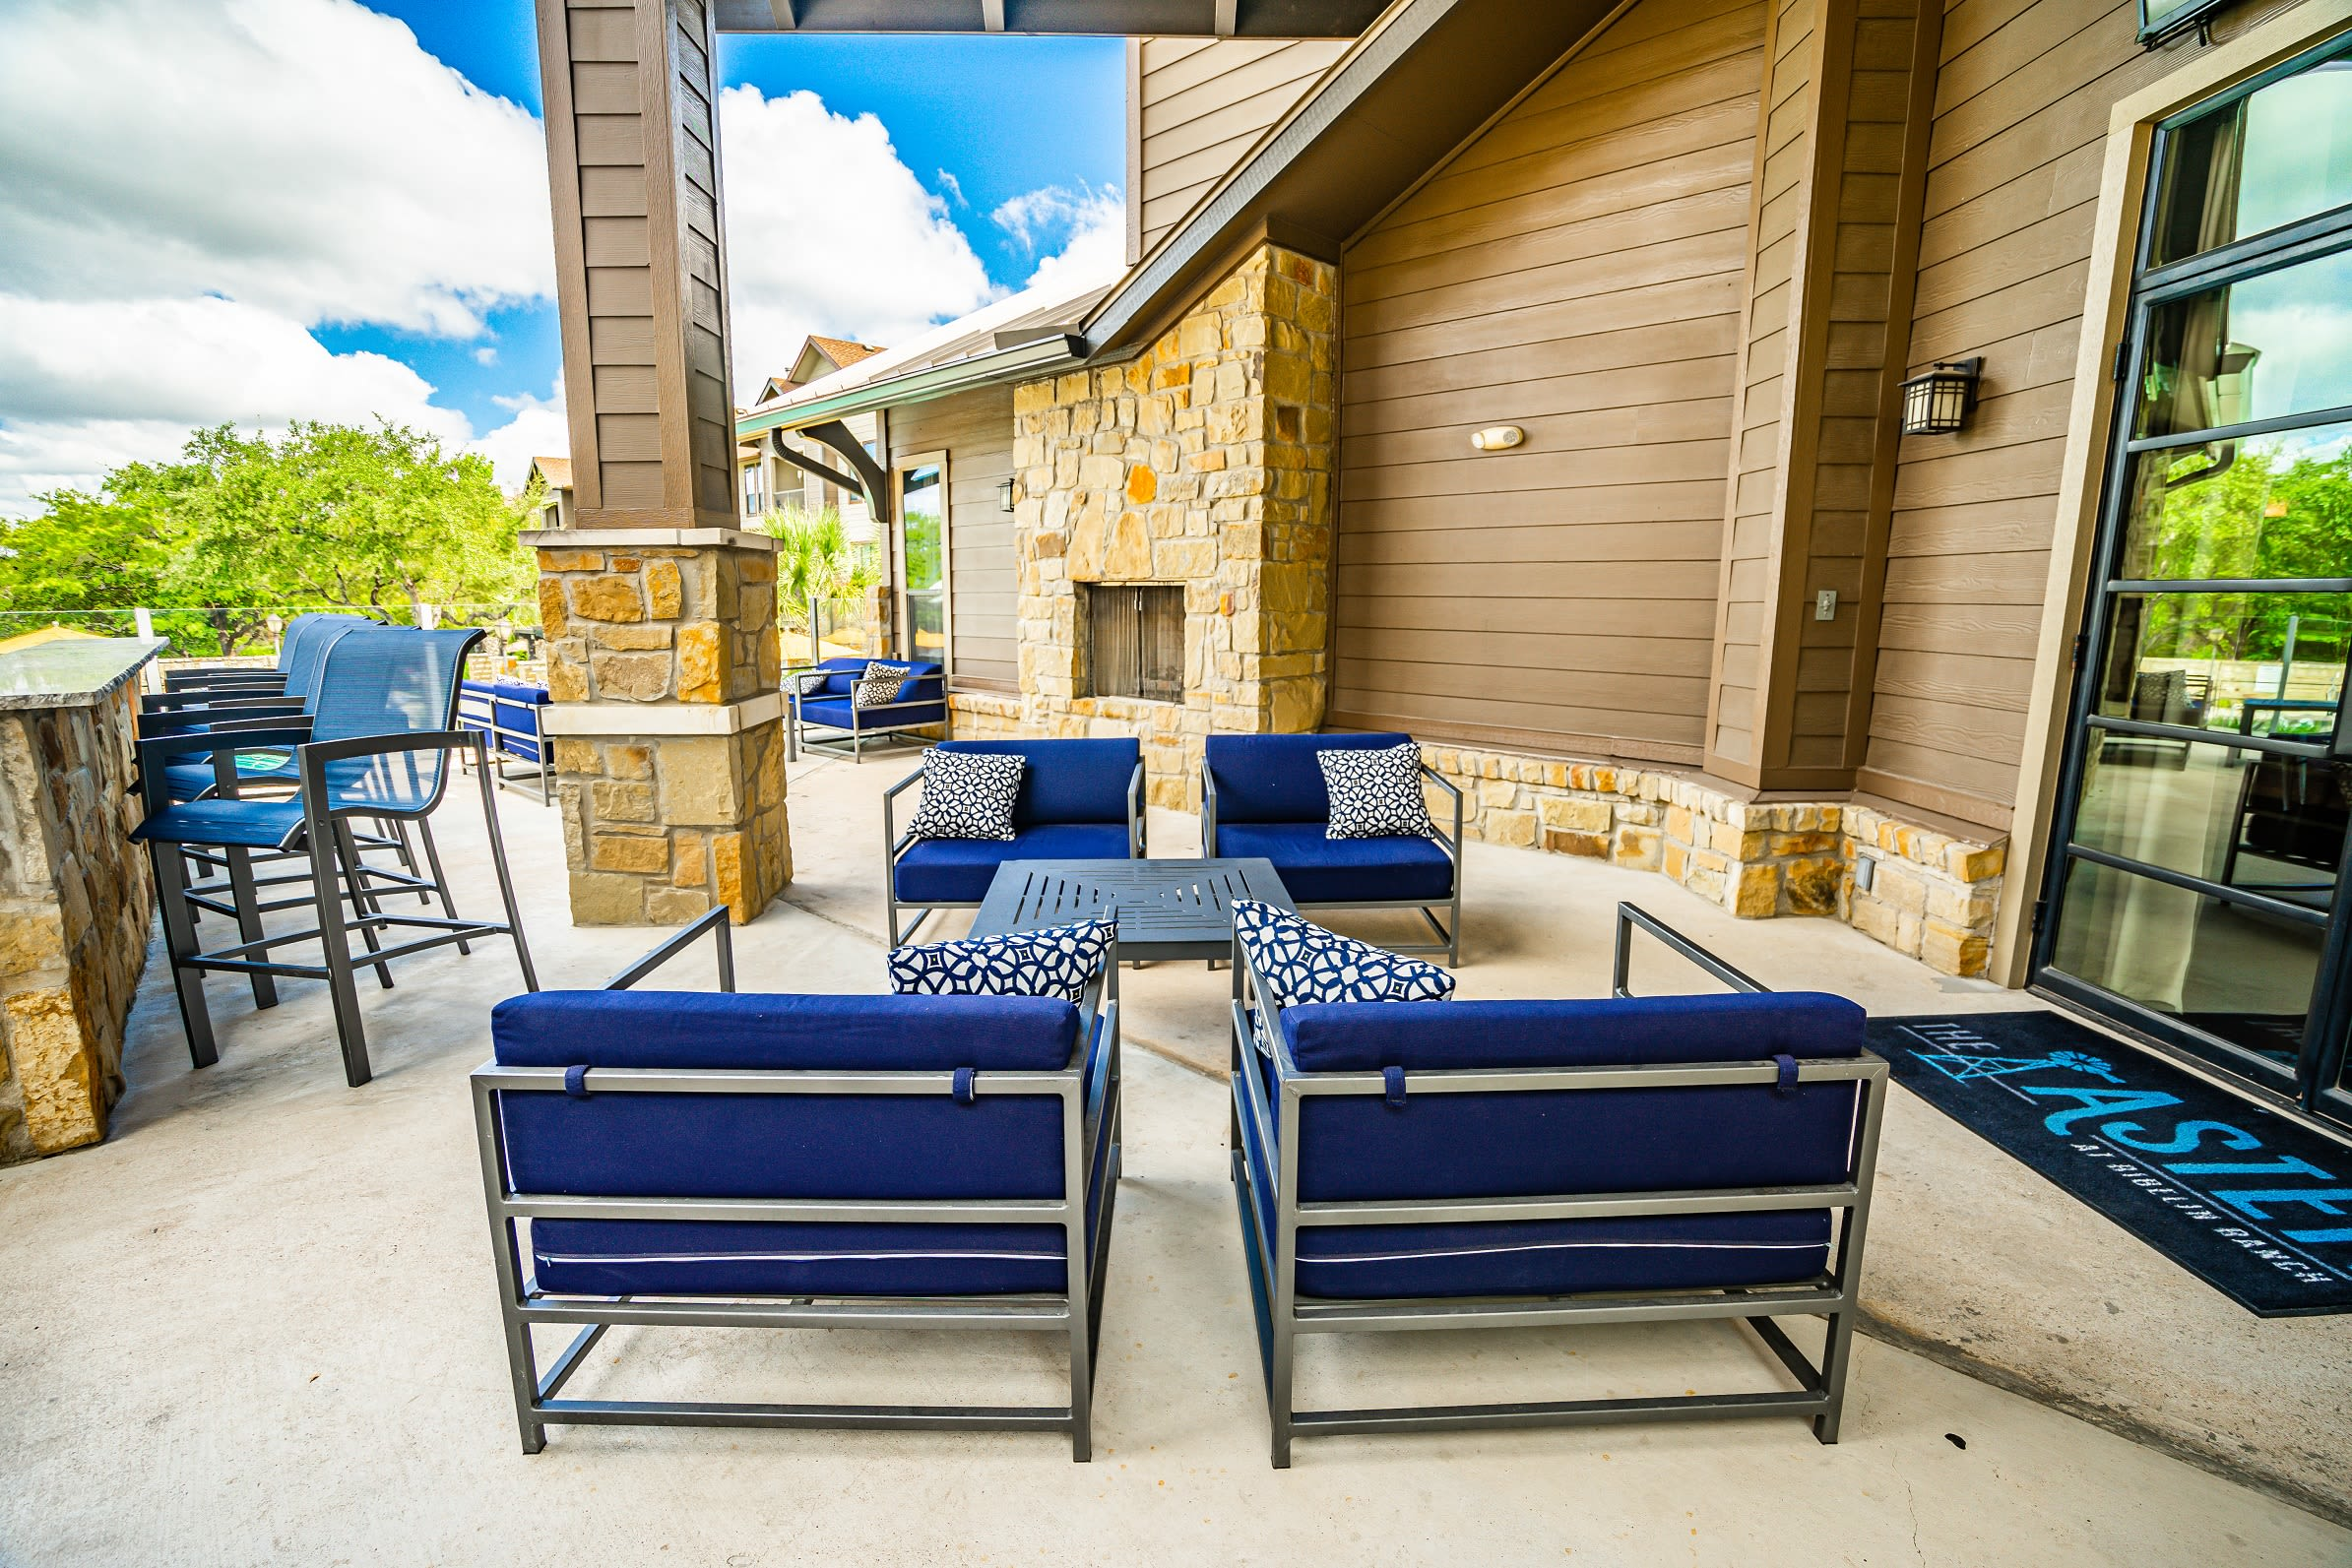 Lounge chairs on deck near pool at The Asten at Ribelin Ranch in Austin, Texas